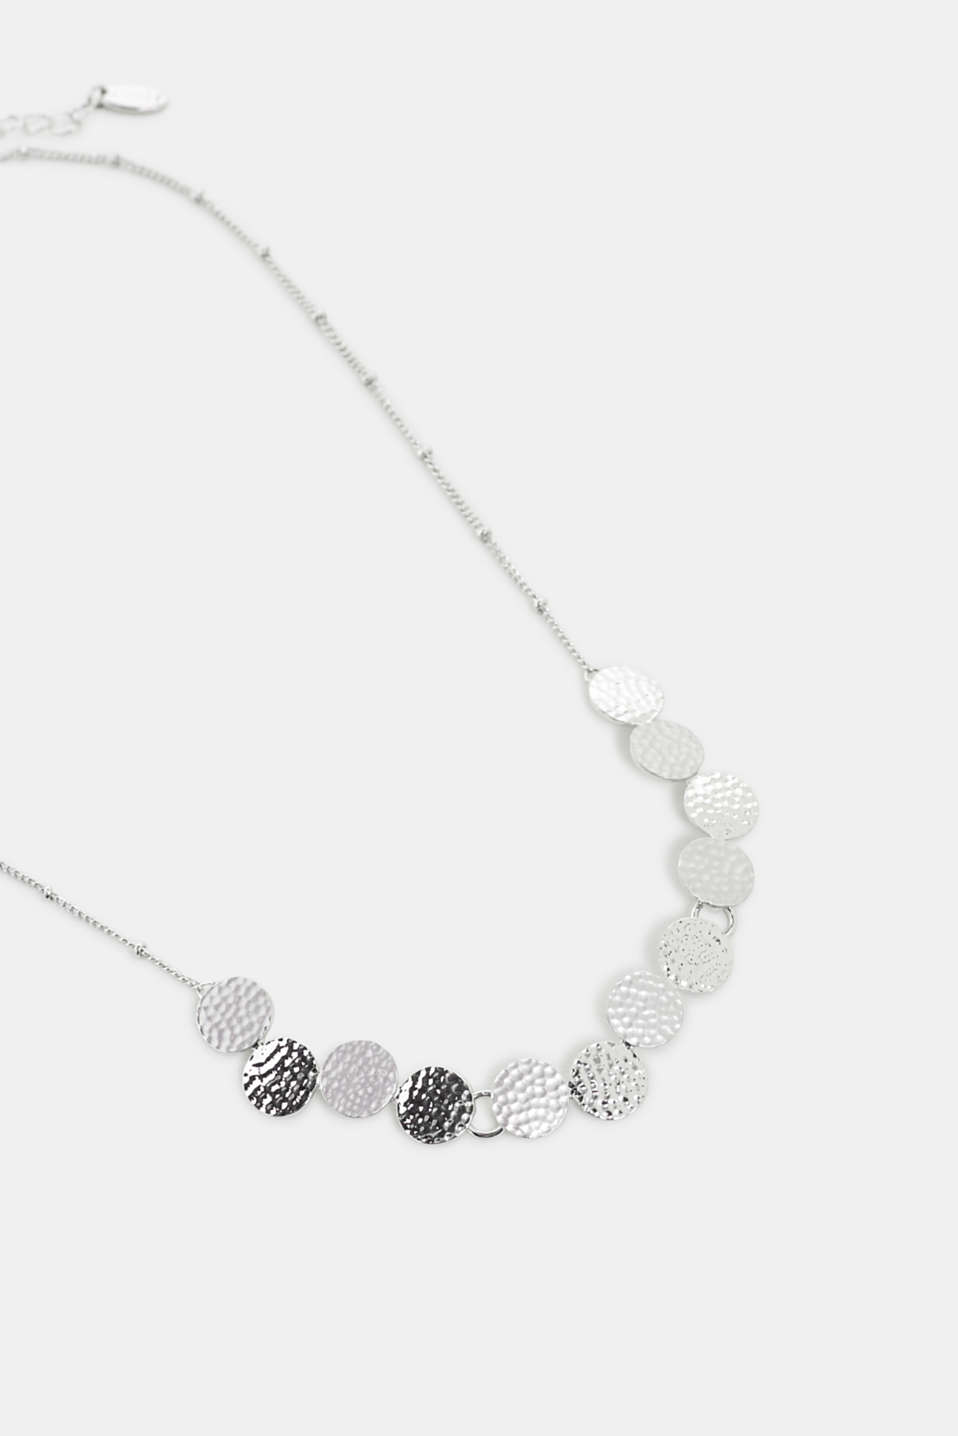 Esprit - Necklace with textured disc pendants, made of metal